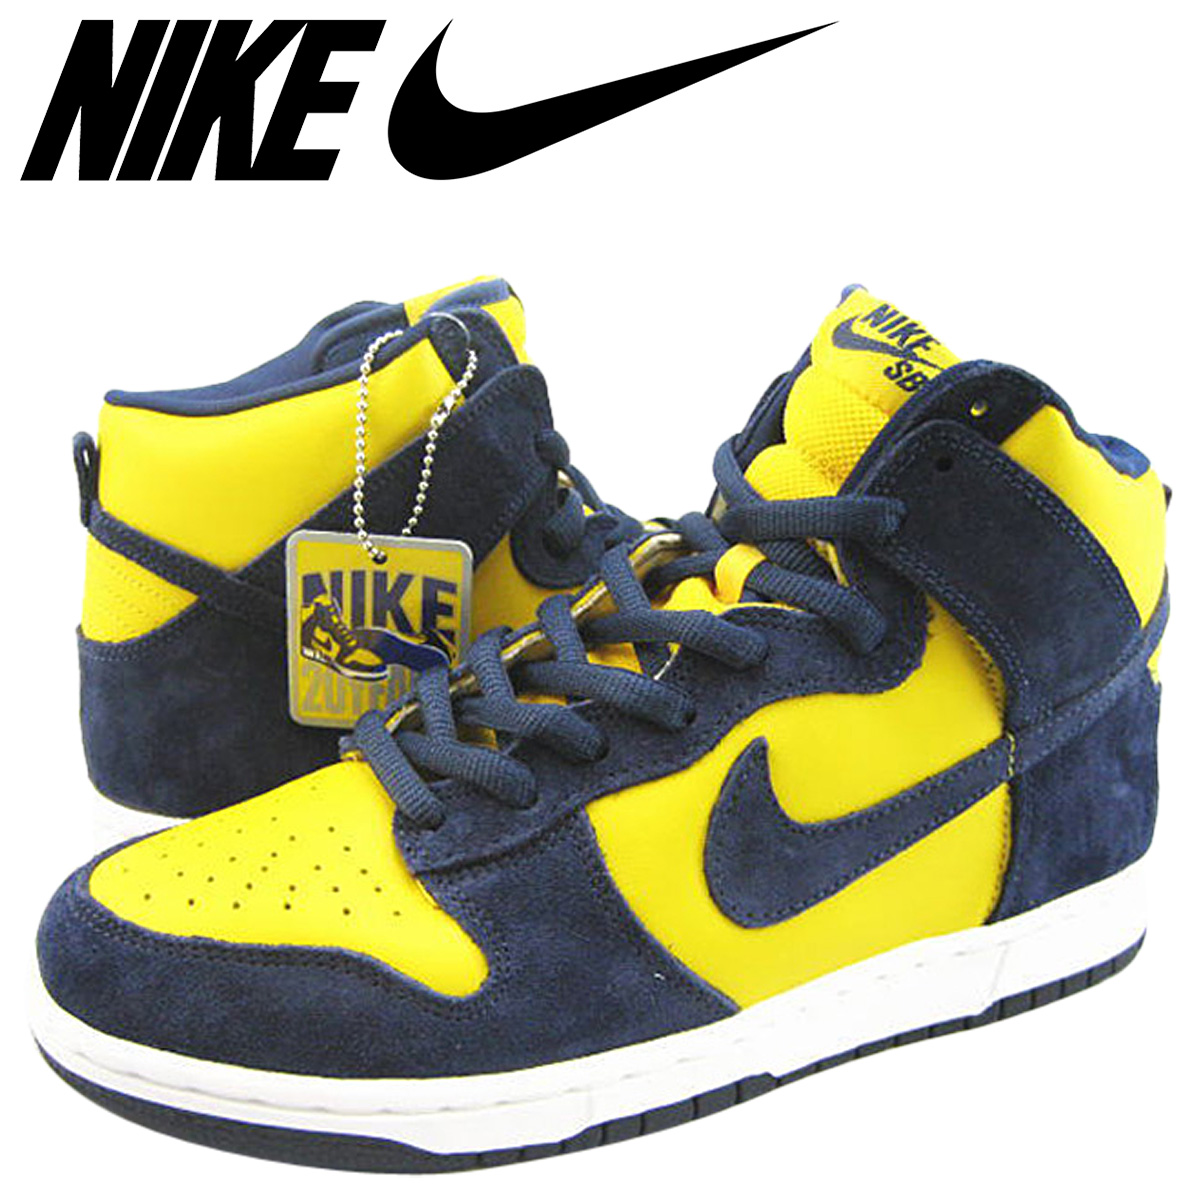 finest selection 3af2f 6c2a8  27cm yellowing  Nike NIKE dunk sneakers DUNK HIGH PRO SB NAV YEL TRUE TO  YOUR SCHOOL dunk high professional S B 305,050-741 navy yellow men